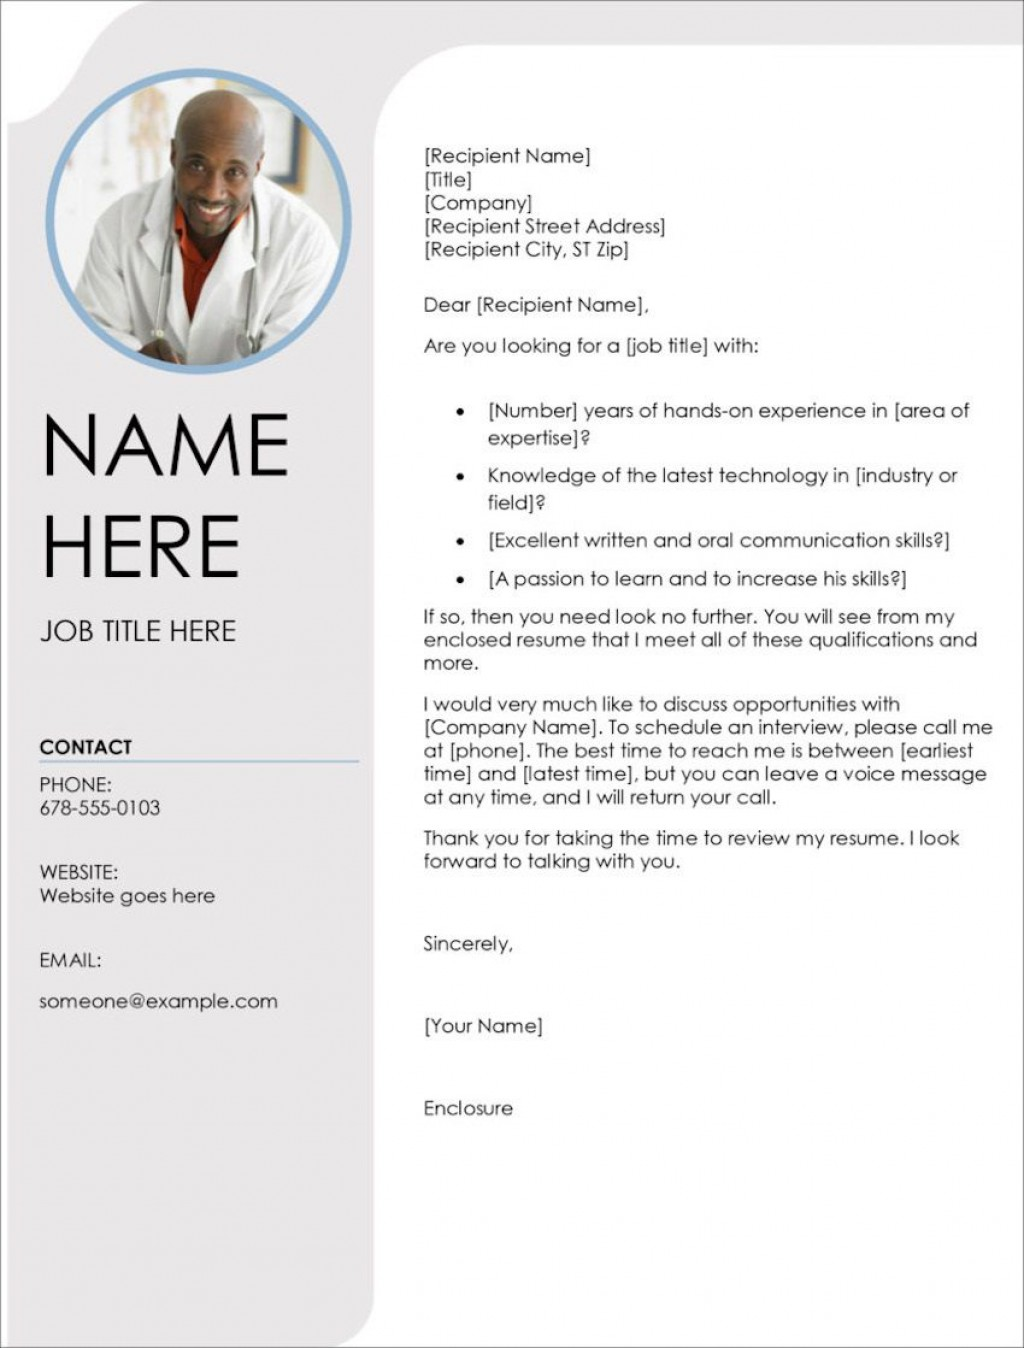 008 Impressive Resume Cover Letter Template Microsoft Word Picture Large